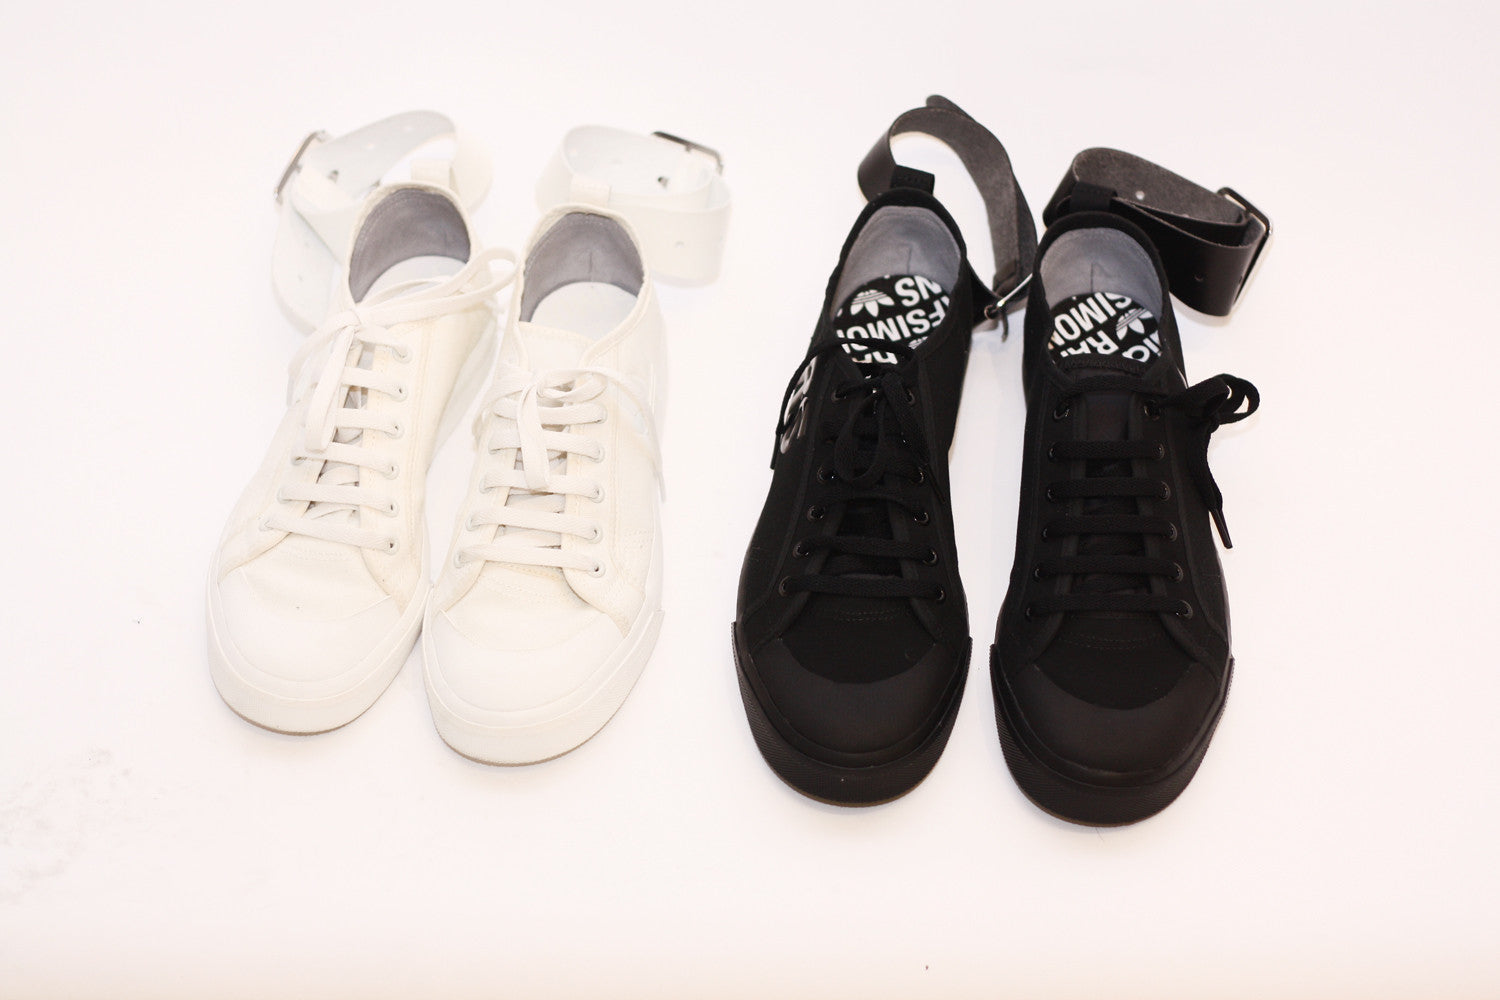 Raf Simons x Adidas | Adidas Originals Spirit Buckle Sneakers (black)